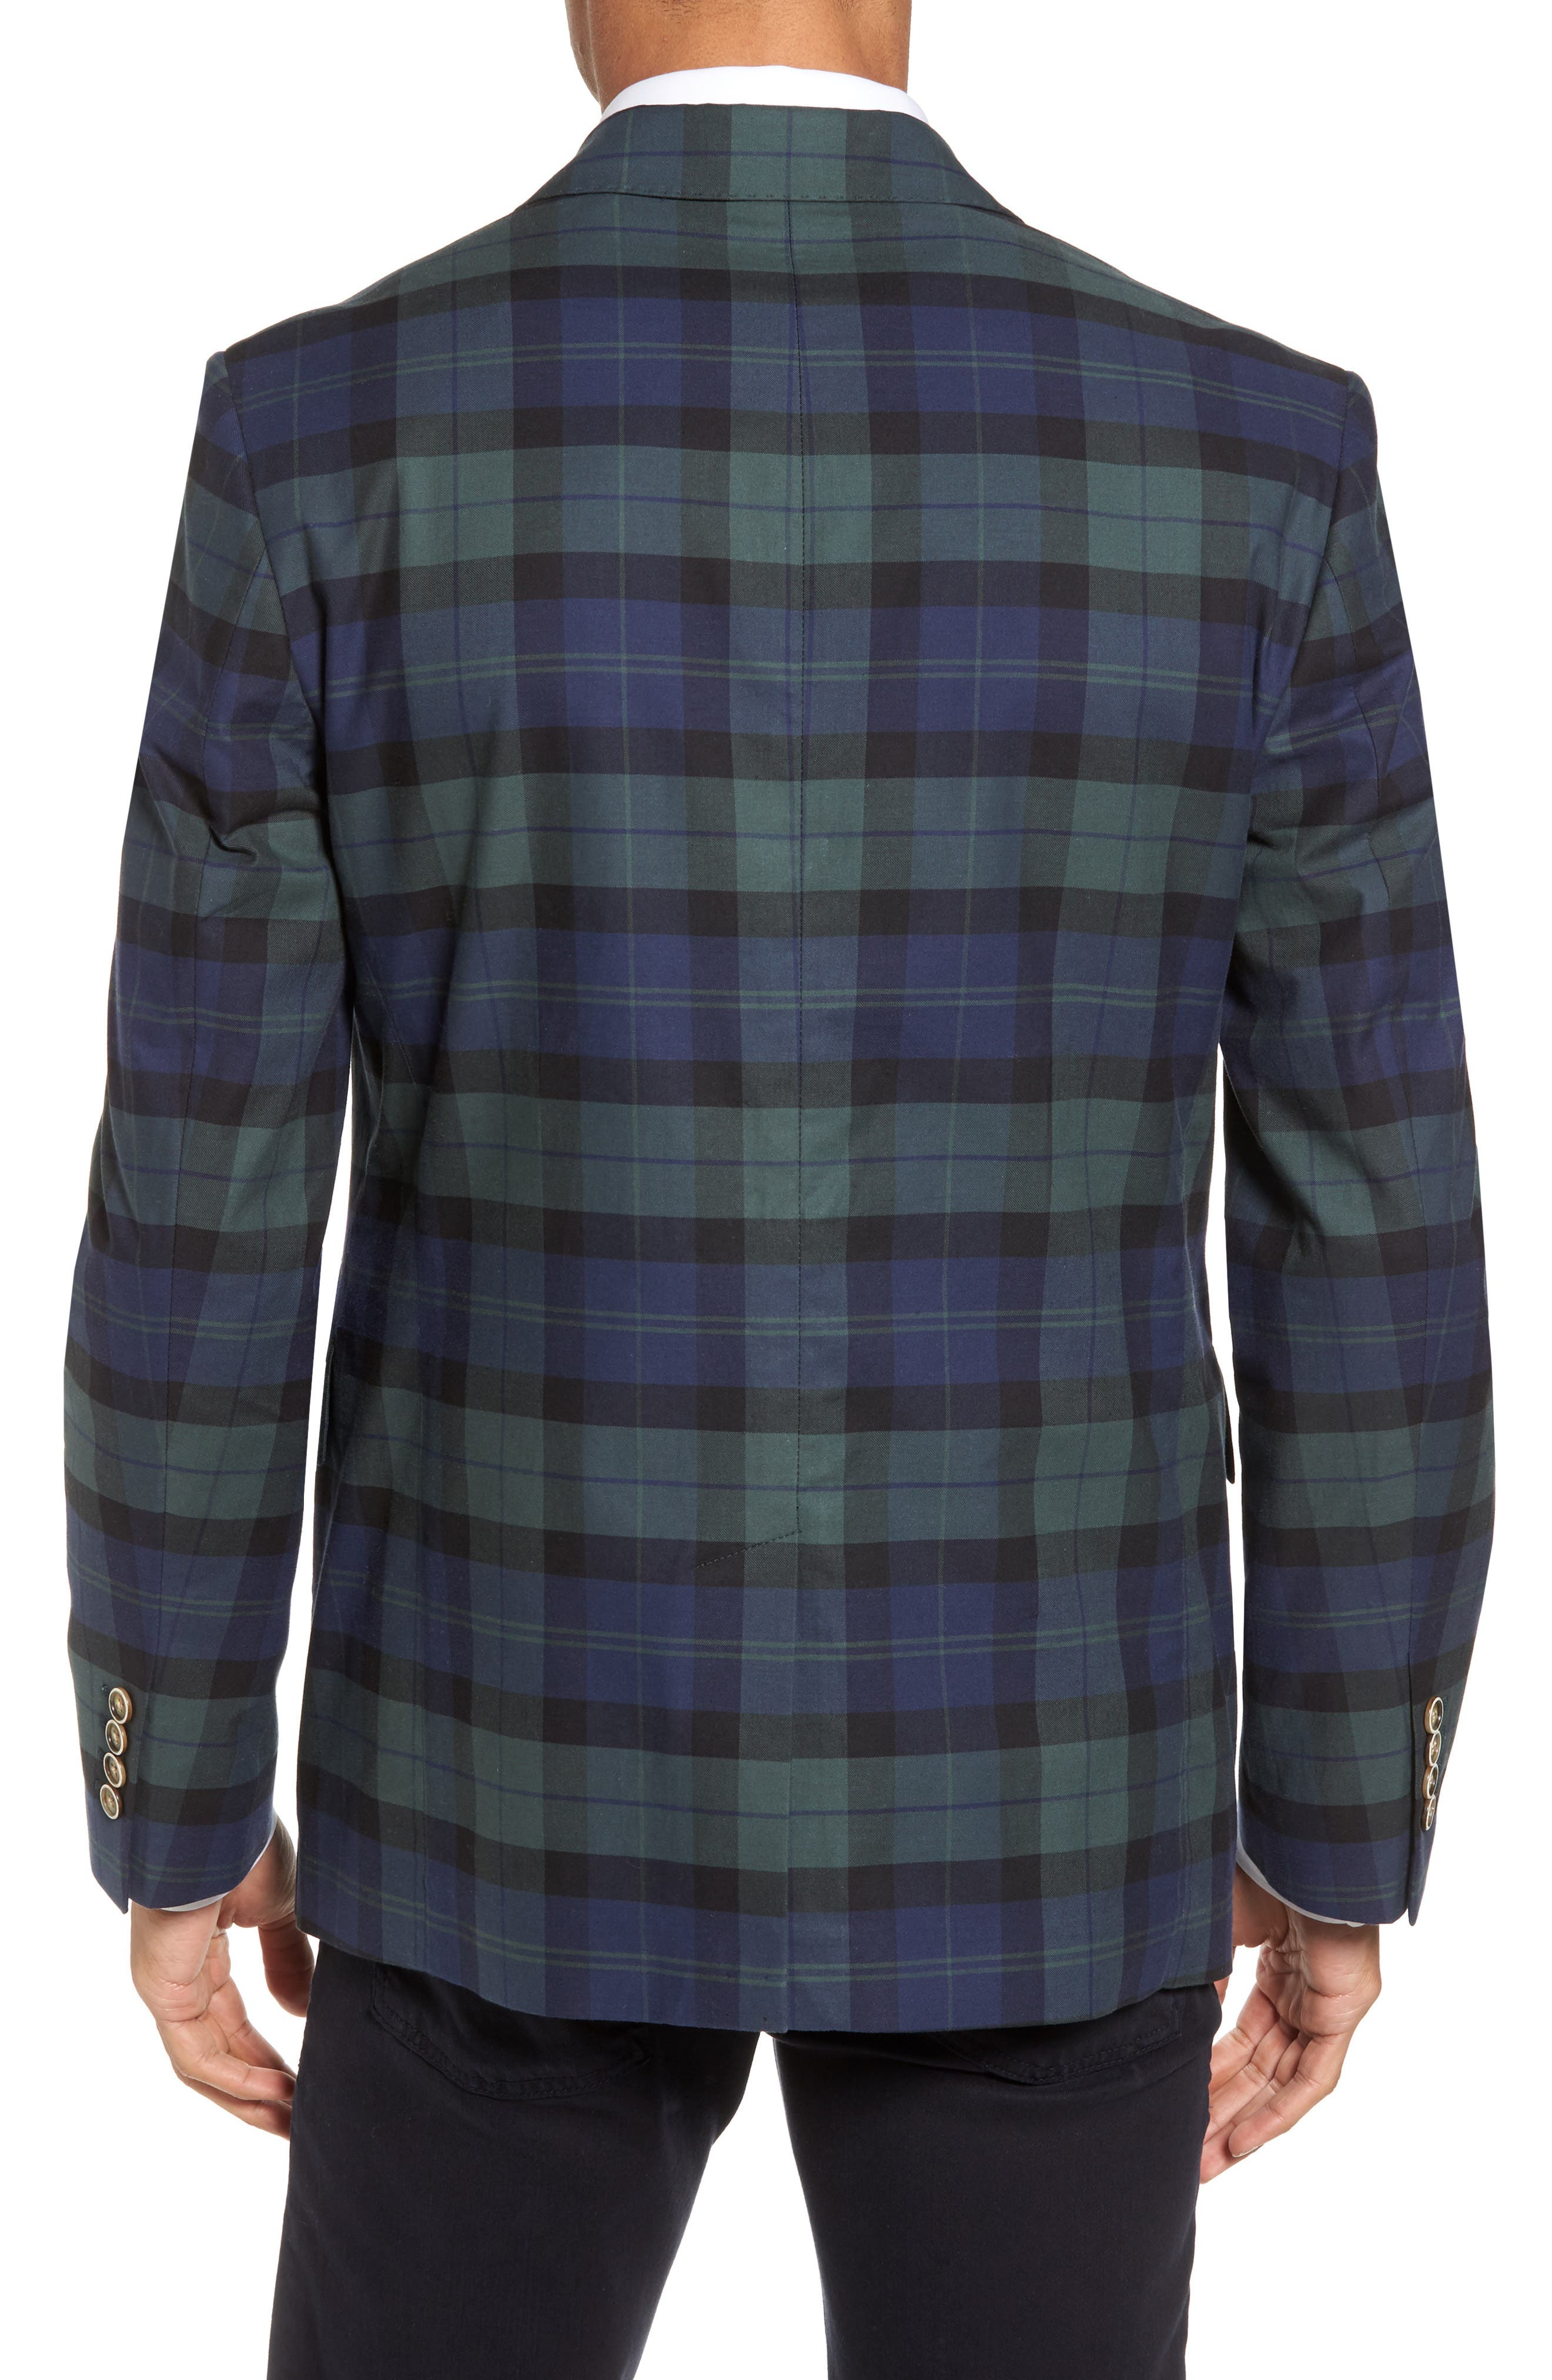 Alternate Image 2  - vineyard vines Classic Fit Blackwatch Plaid Sport Coat